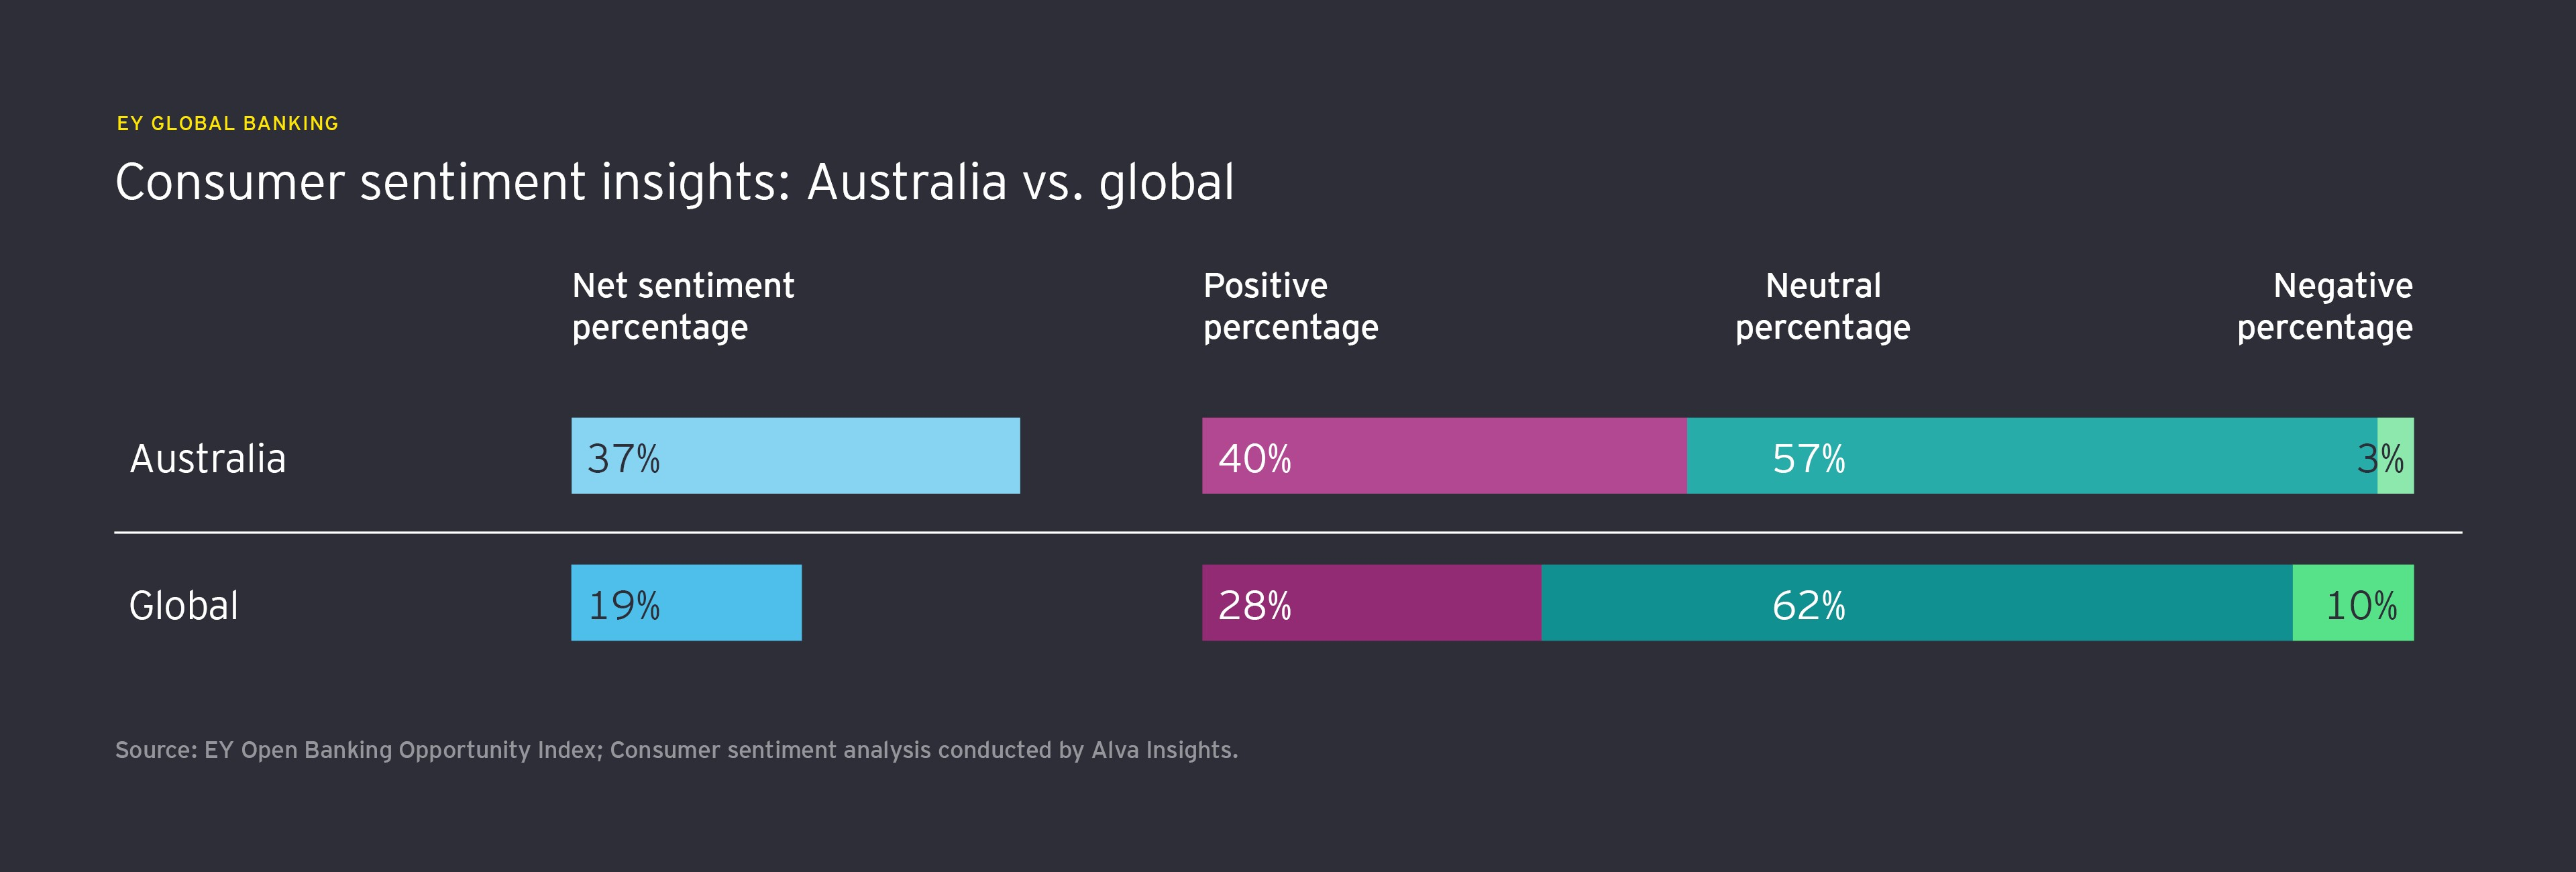 consumer sentiment insights australia